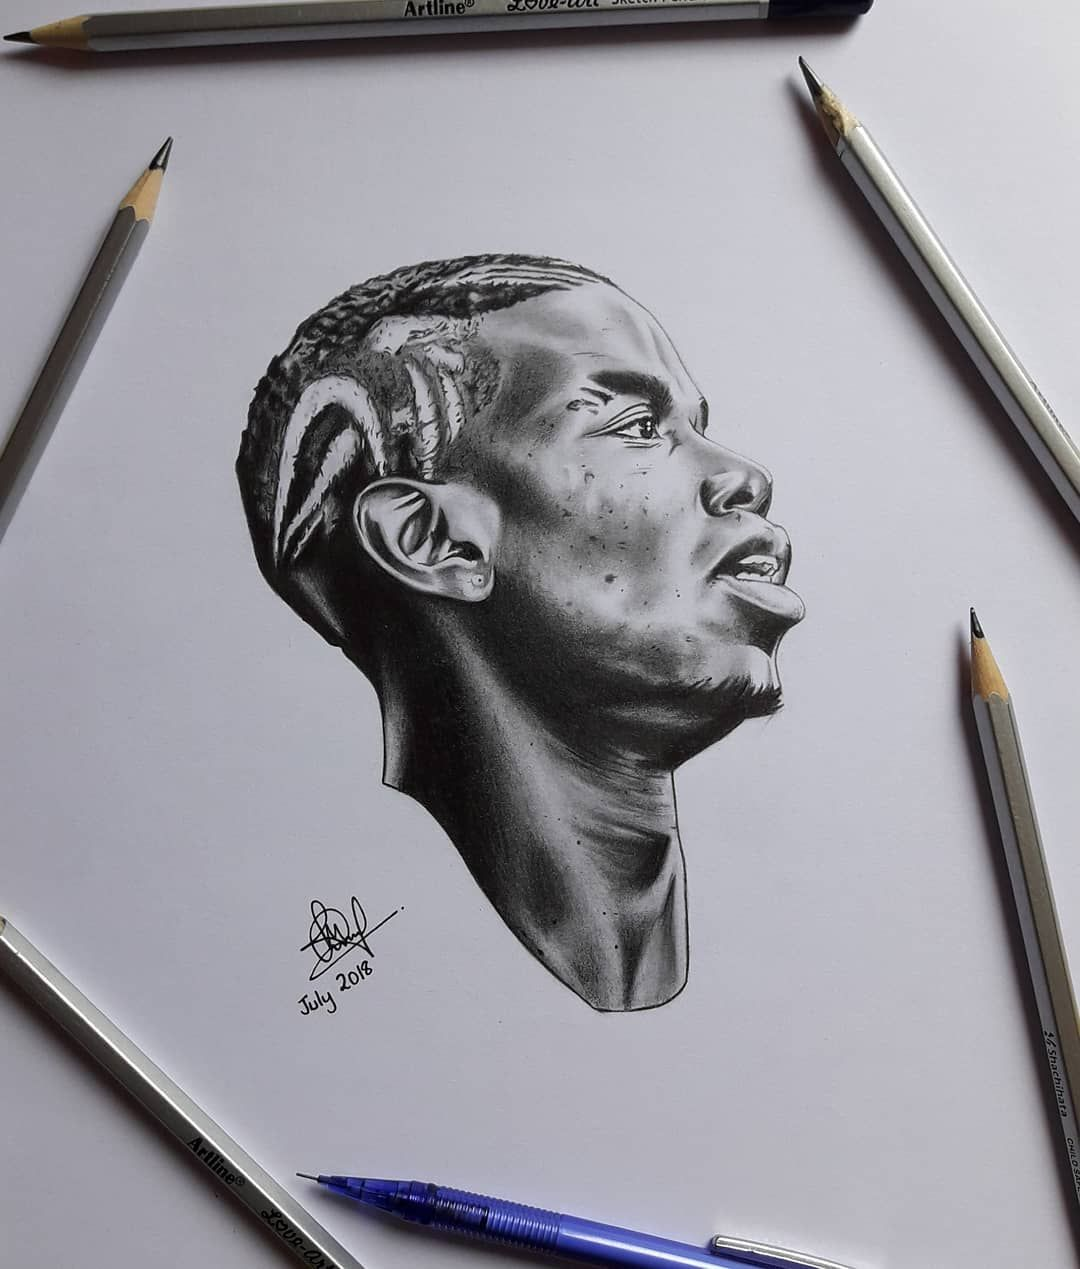 Paul Pogba Paul Labile Pogba Born 15 March 1993 Is A French Professional Footballer Who Plays For P Desenhos Simples Para Desenhar Desenhos Preto E Branco Follow premier league 2020/2021 standings, overall, home/away and form (last 5 matches) besides premier league 2020/2021 standings you can find 5000+ competitions from more than 30. paul pogba paul labile pogba born